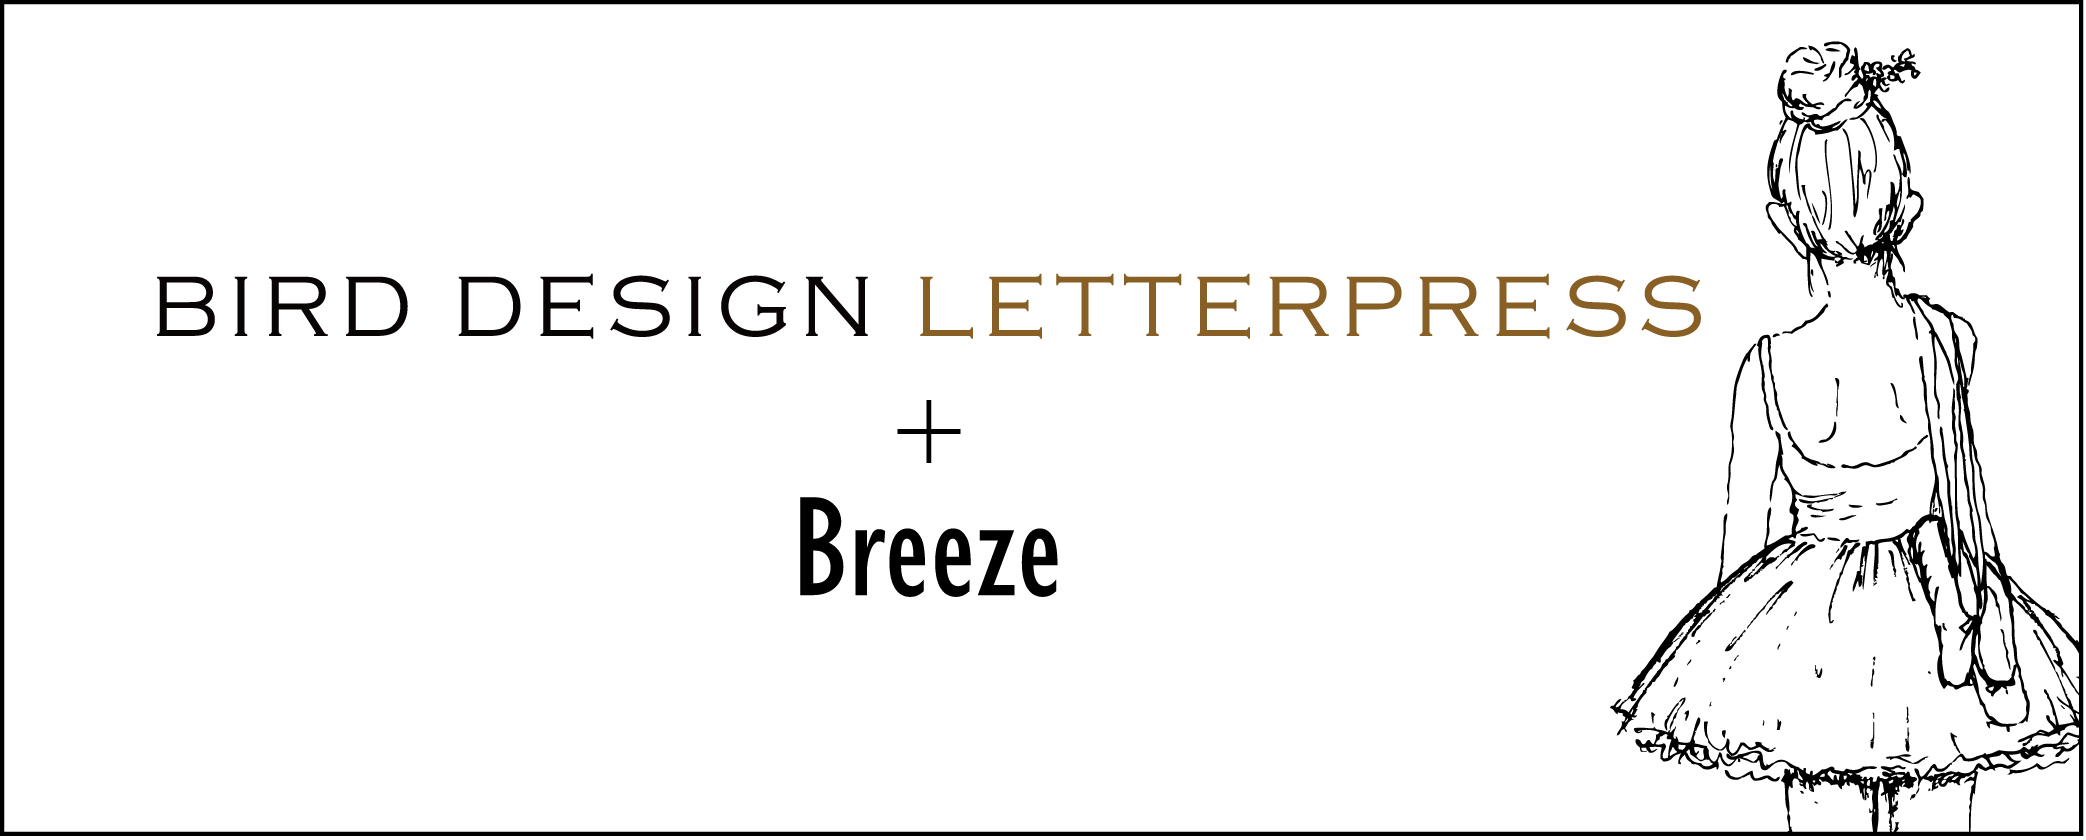 Bird Design Letterpress+Breeze